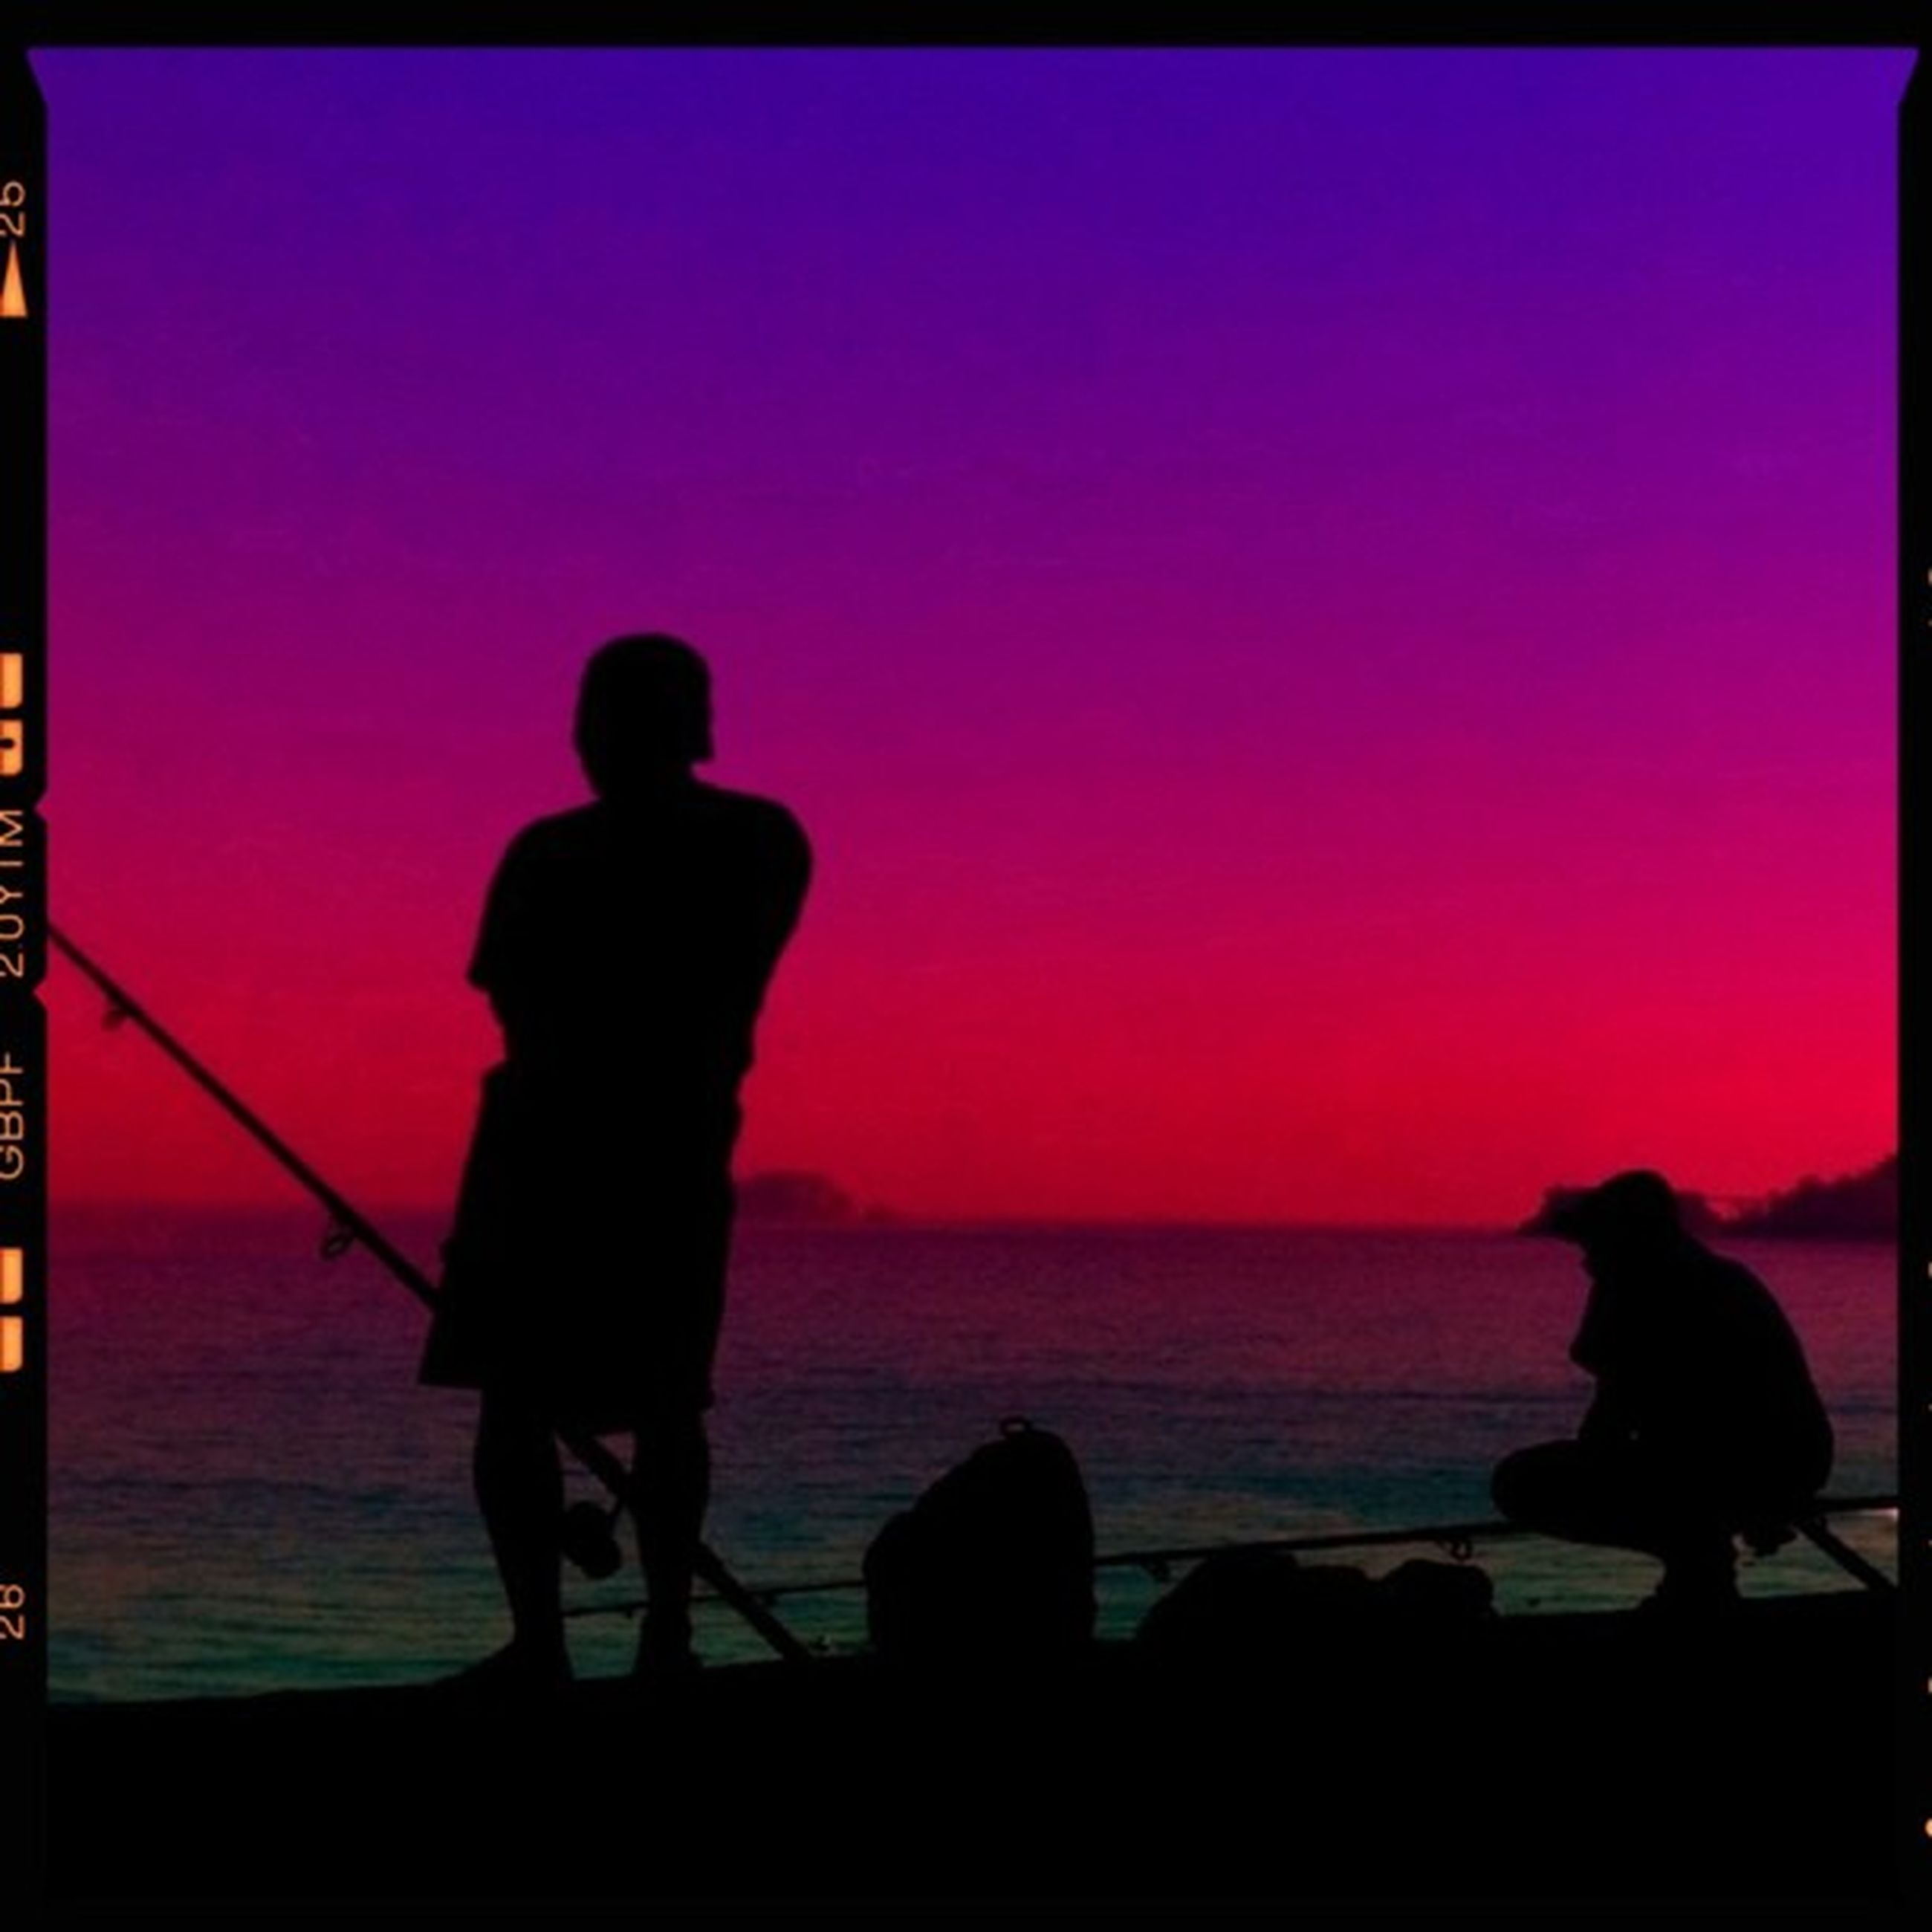 silhouette, sea, transfer print, rear view, standing, men, water, lifestyles, full length, horizon over water, leisure activity, auto post production filter, sunset, person, togetherness, copy space, clear sky